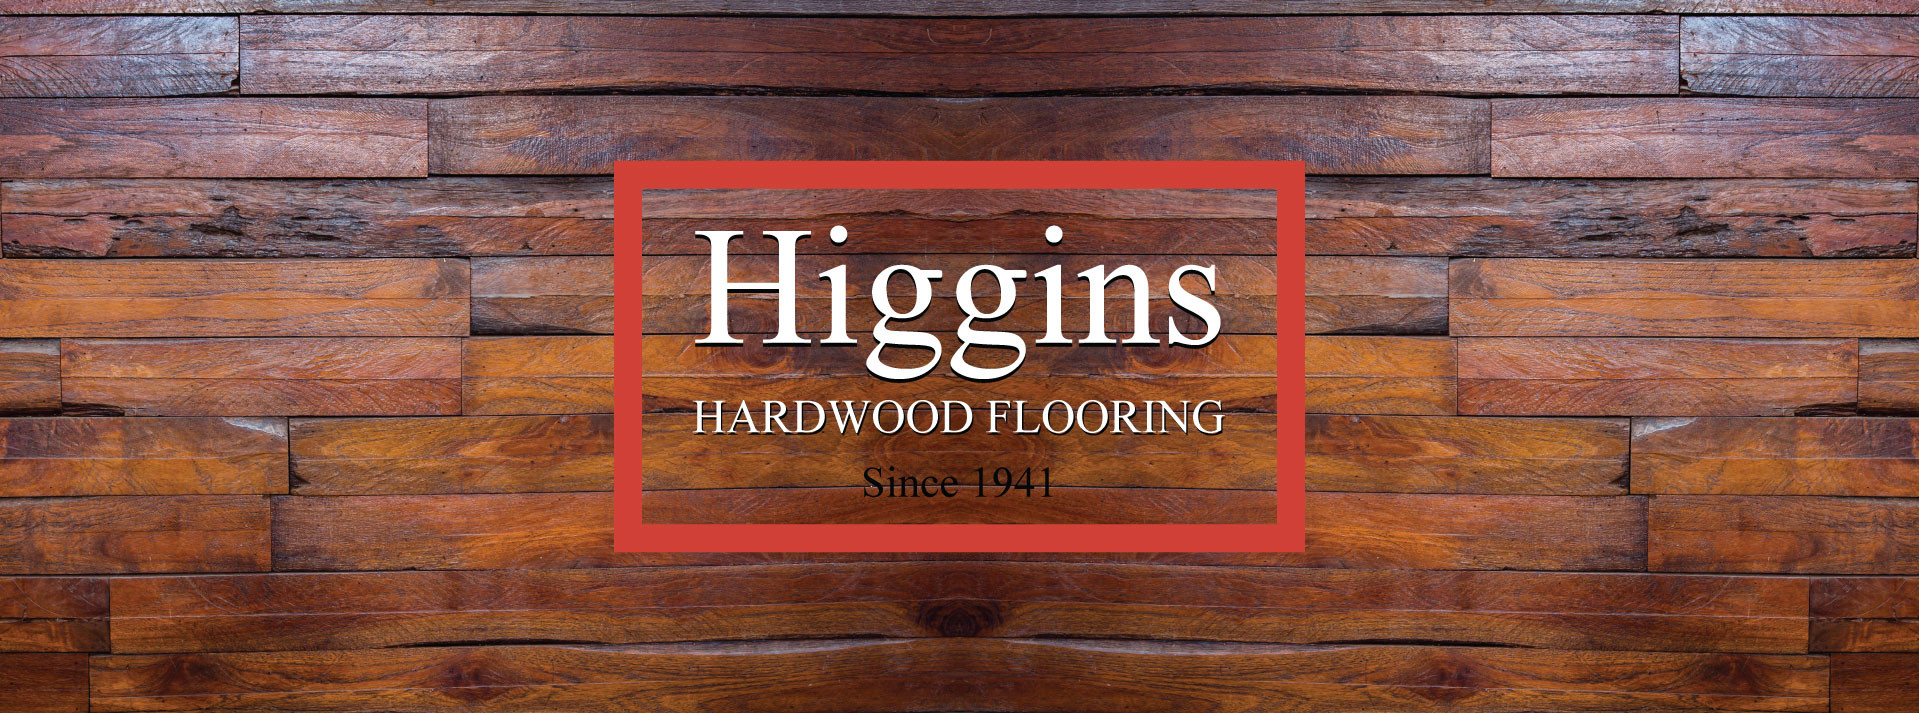 How Do You Install Hardwood Floors On A Concrete Slab Of Higgins Hardwood Flooring In Peterborough Oshawa Lindsay Ajax Inside Office Hours